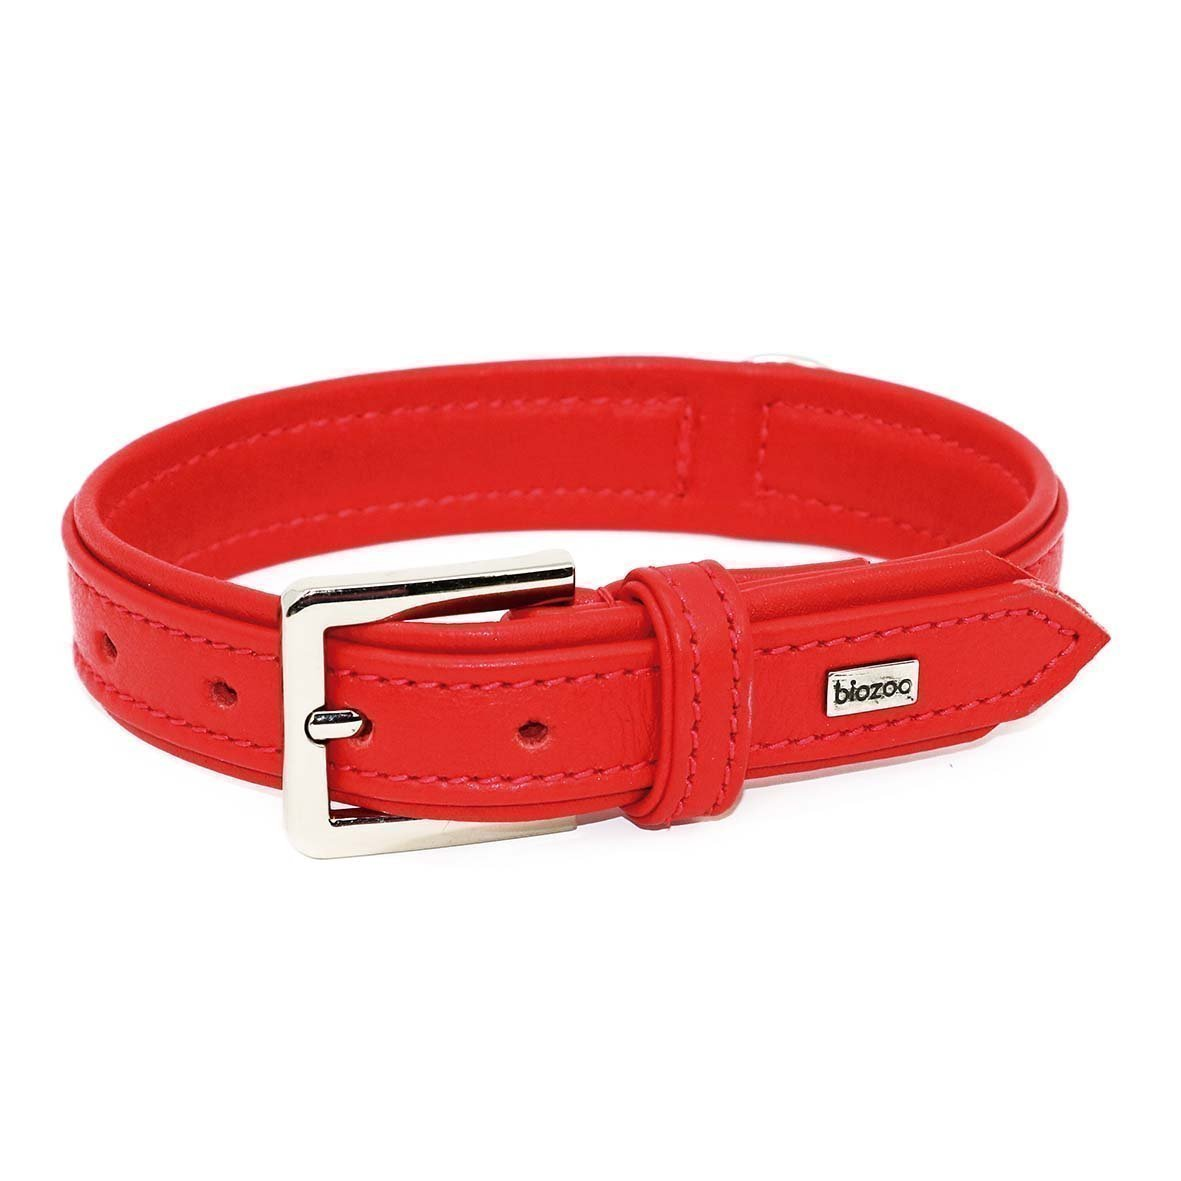 Provence Leather Collar-Collar-Biozoo-Red-35 x 1,5 cm-Biozoopets